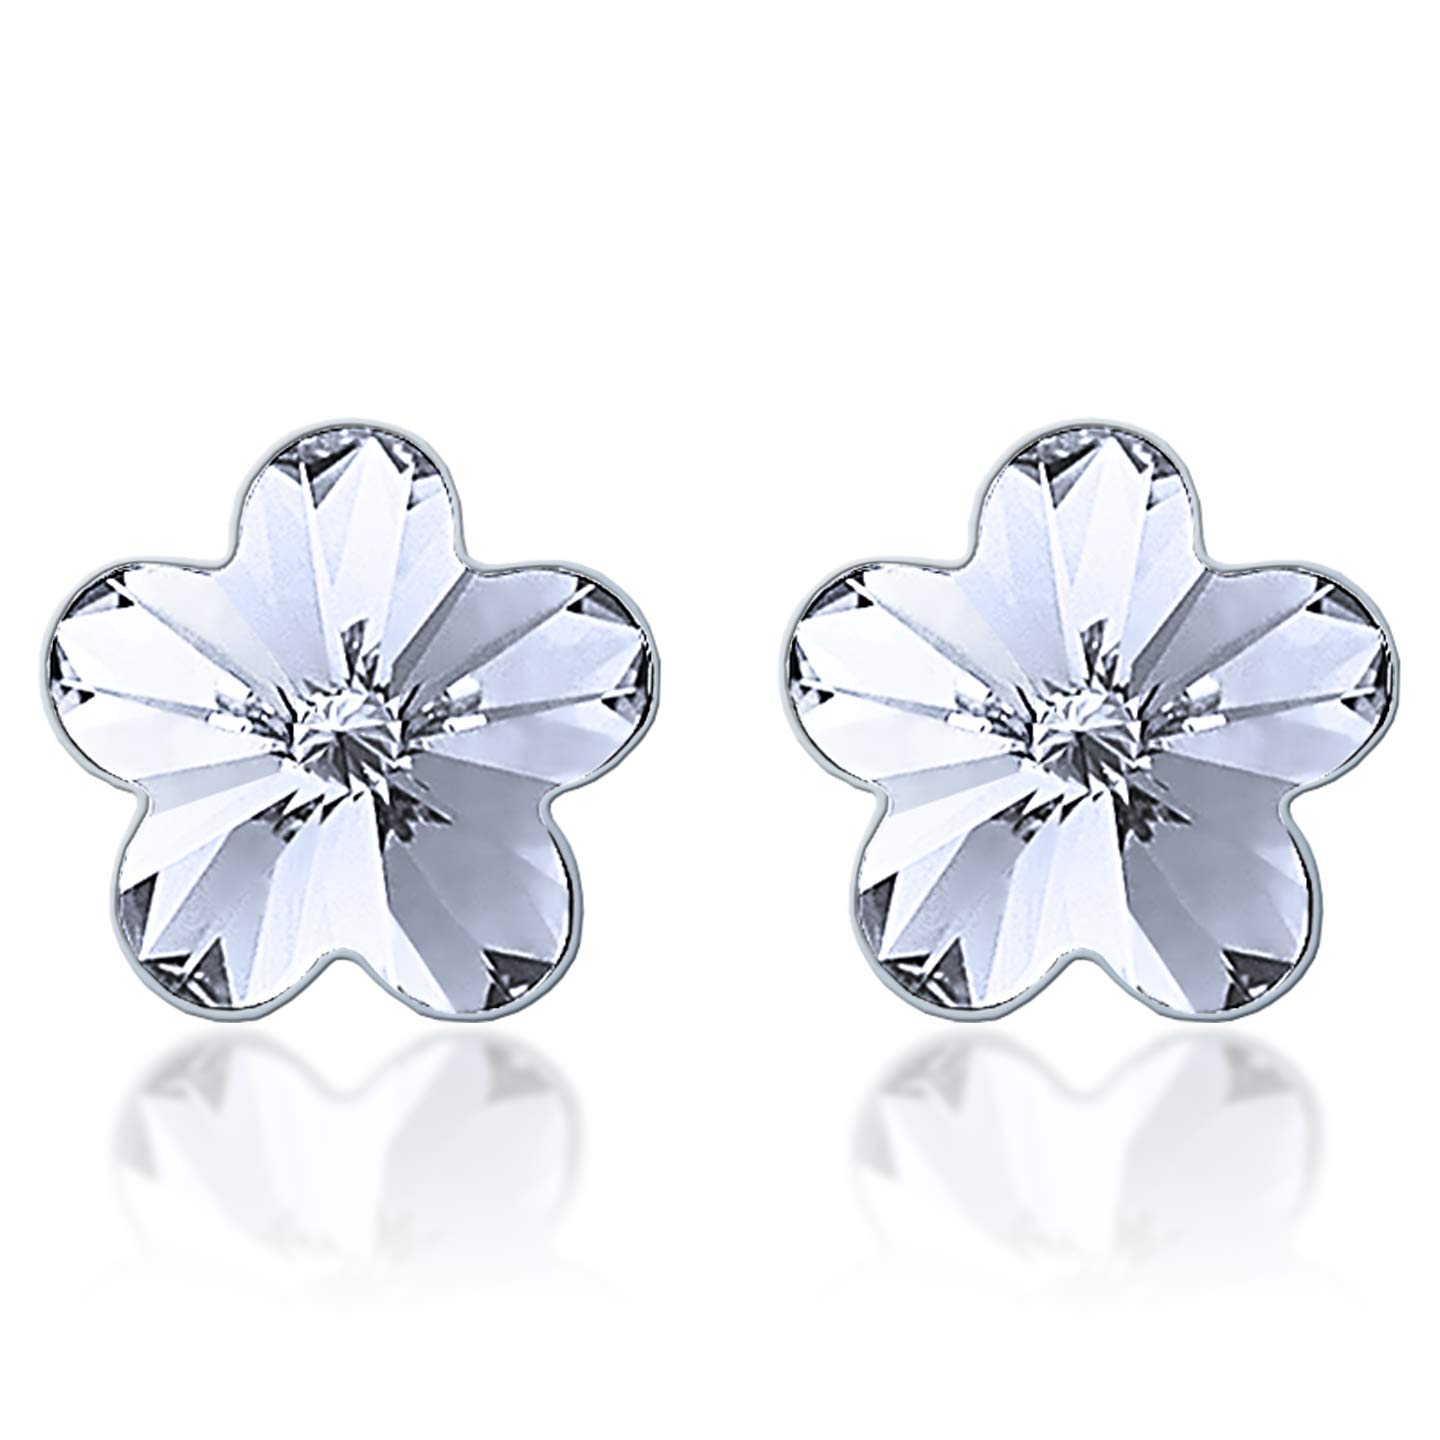 Stud Earrings with White Clear Flower Crystals from Swarovski Silver Toned Rhodium Plated